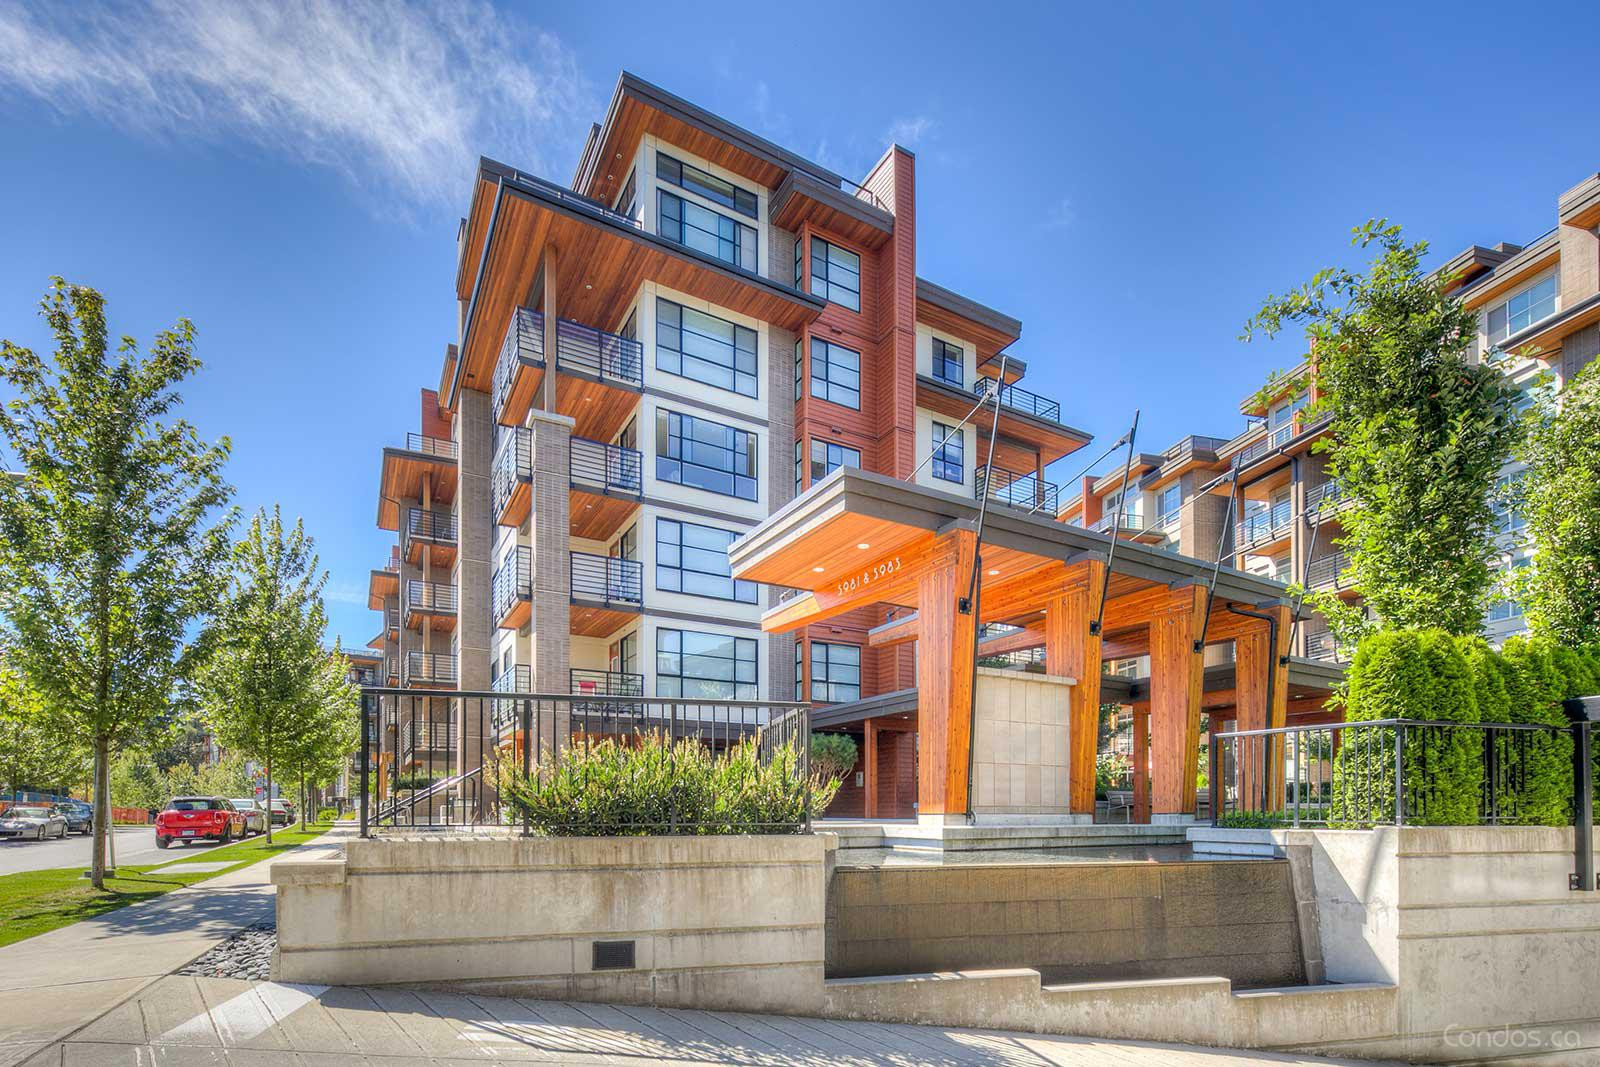 [LEASED] UBC Sail by Westbrook Village in UBC – 2.5 Bed + 2 Bath – 1050 sq ft – High End Condo